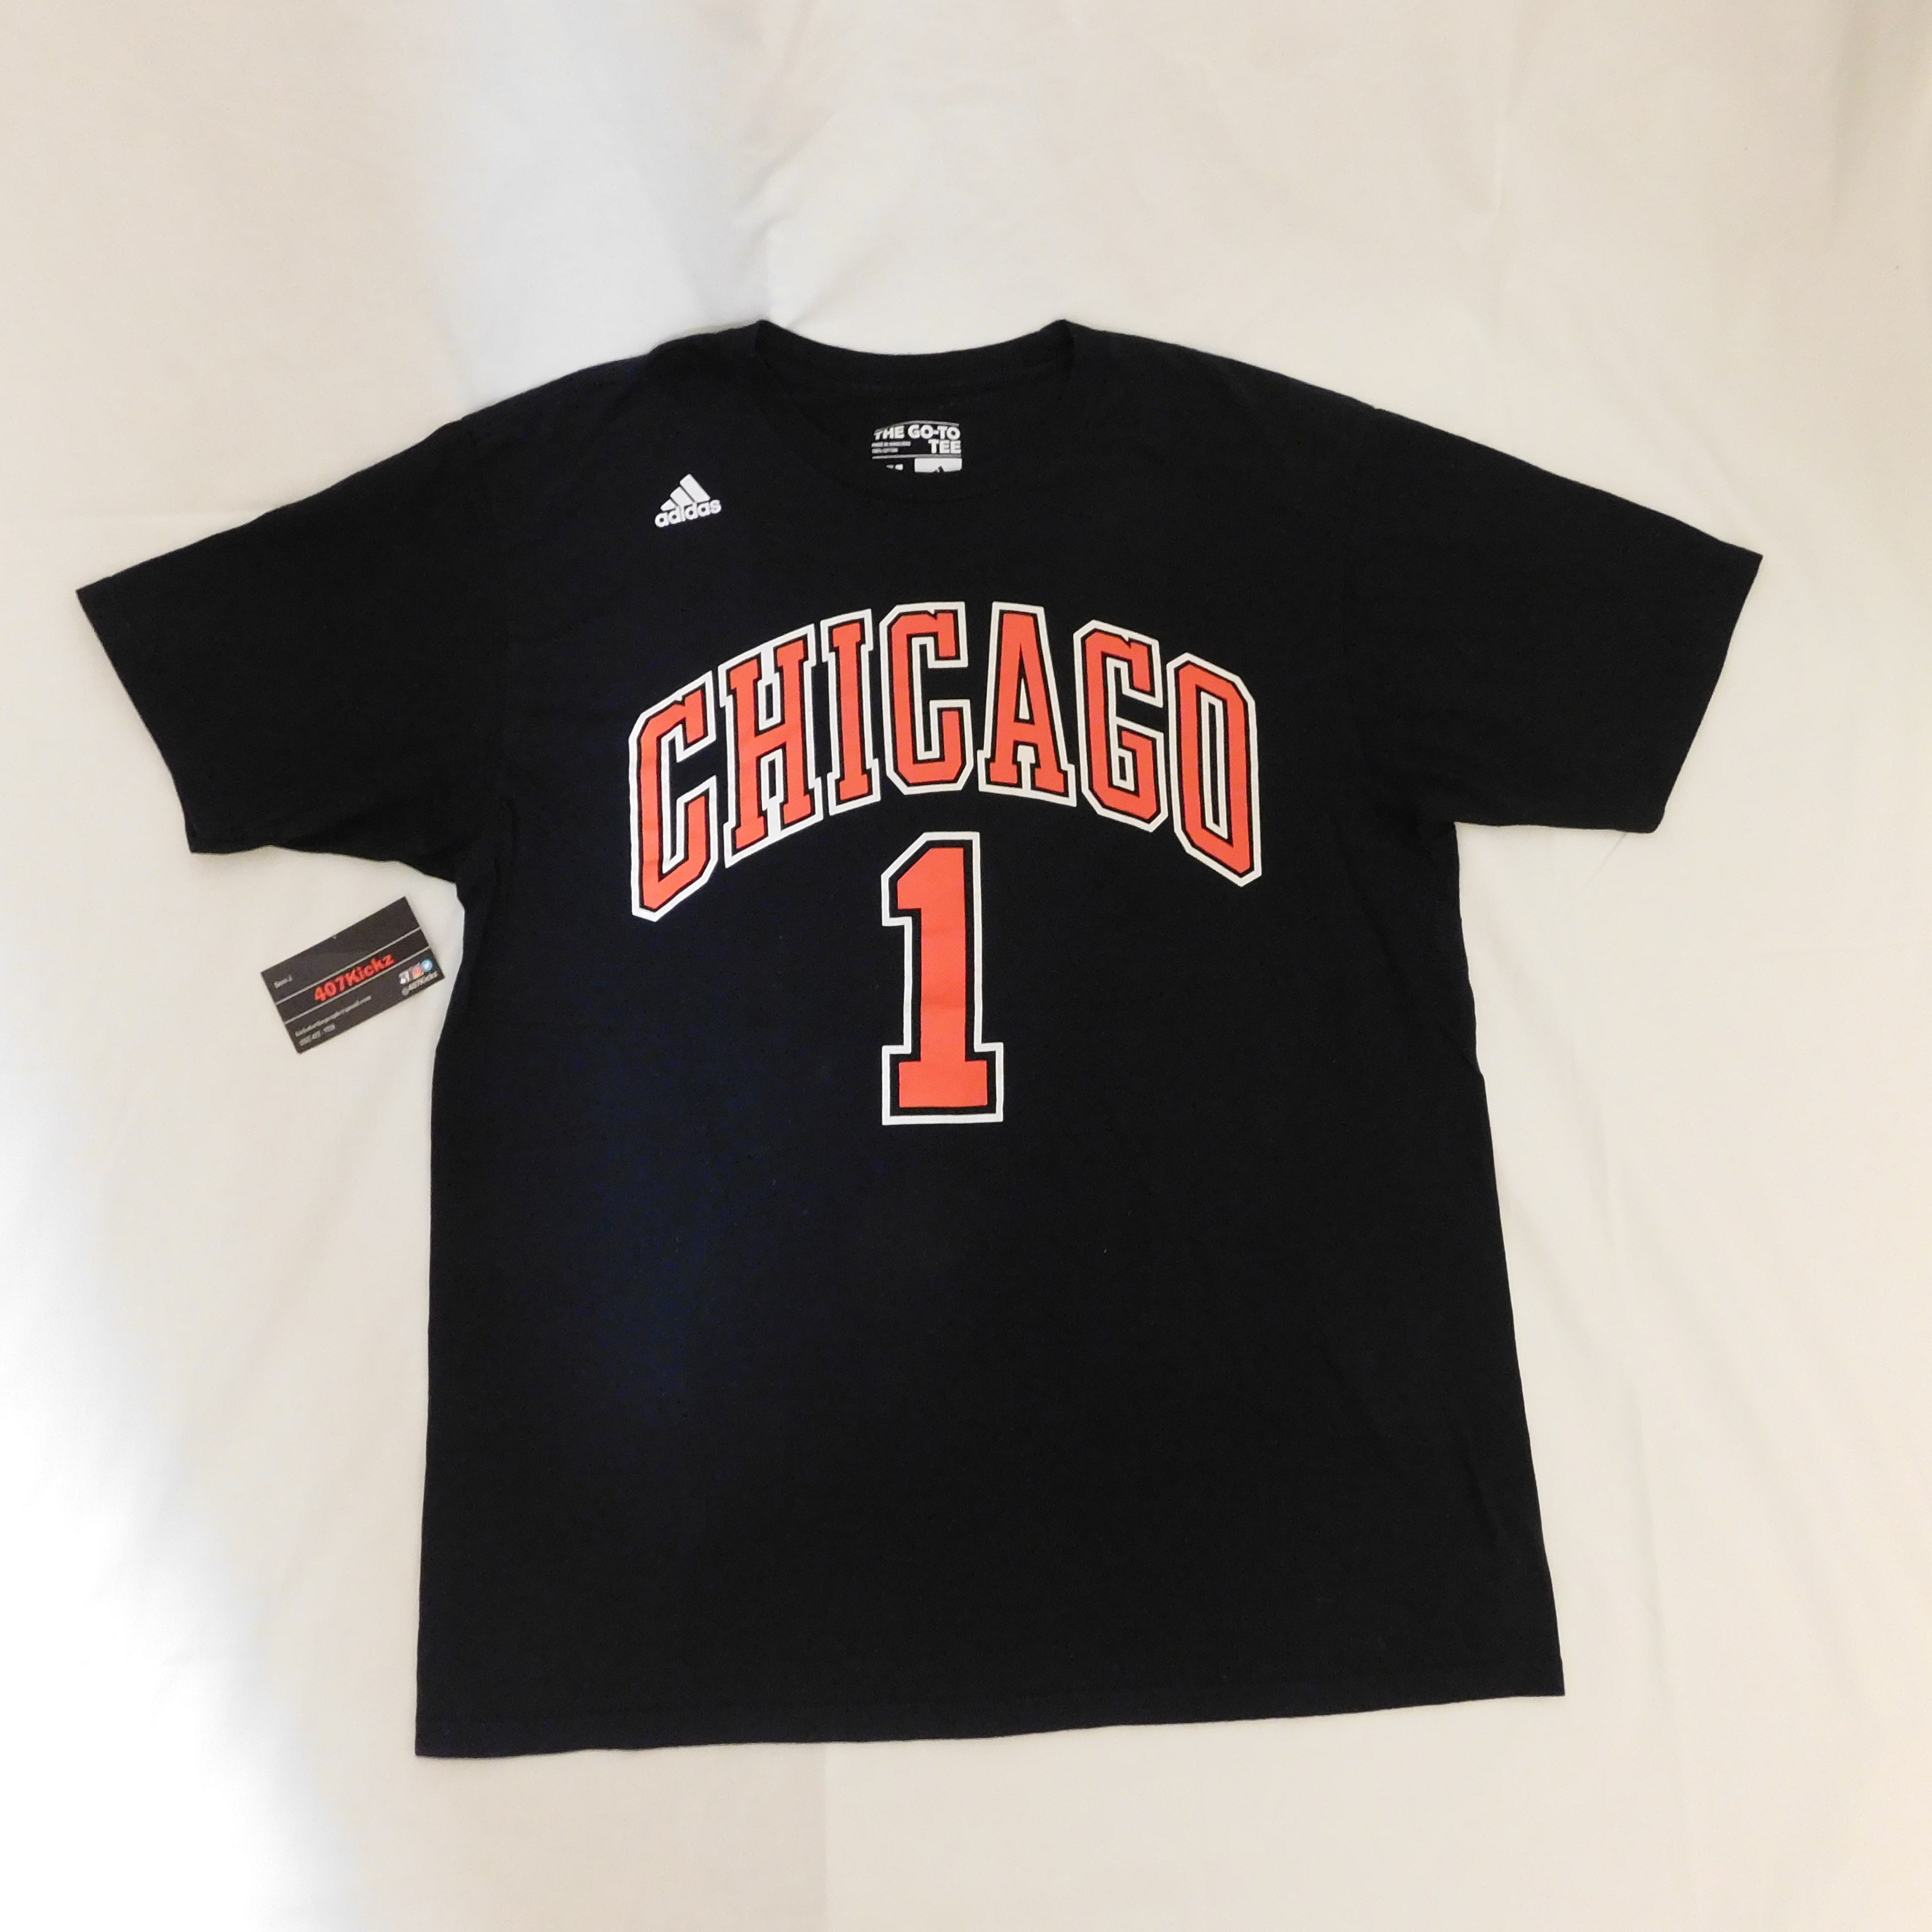 8c5df8e4c5eb2 Adidas Derrick Rose  1 NBA Chicago Bulls Jersey Style Tee T Shirt Black  Size xl - Short Sleeve T-Shirts for Sale - Grailed